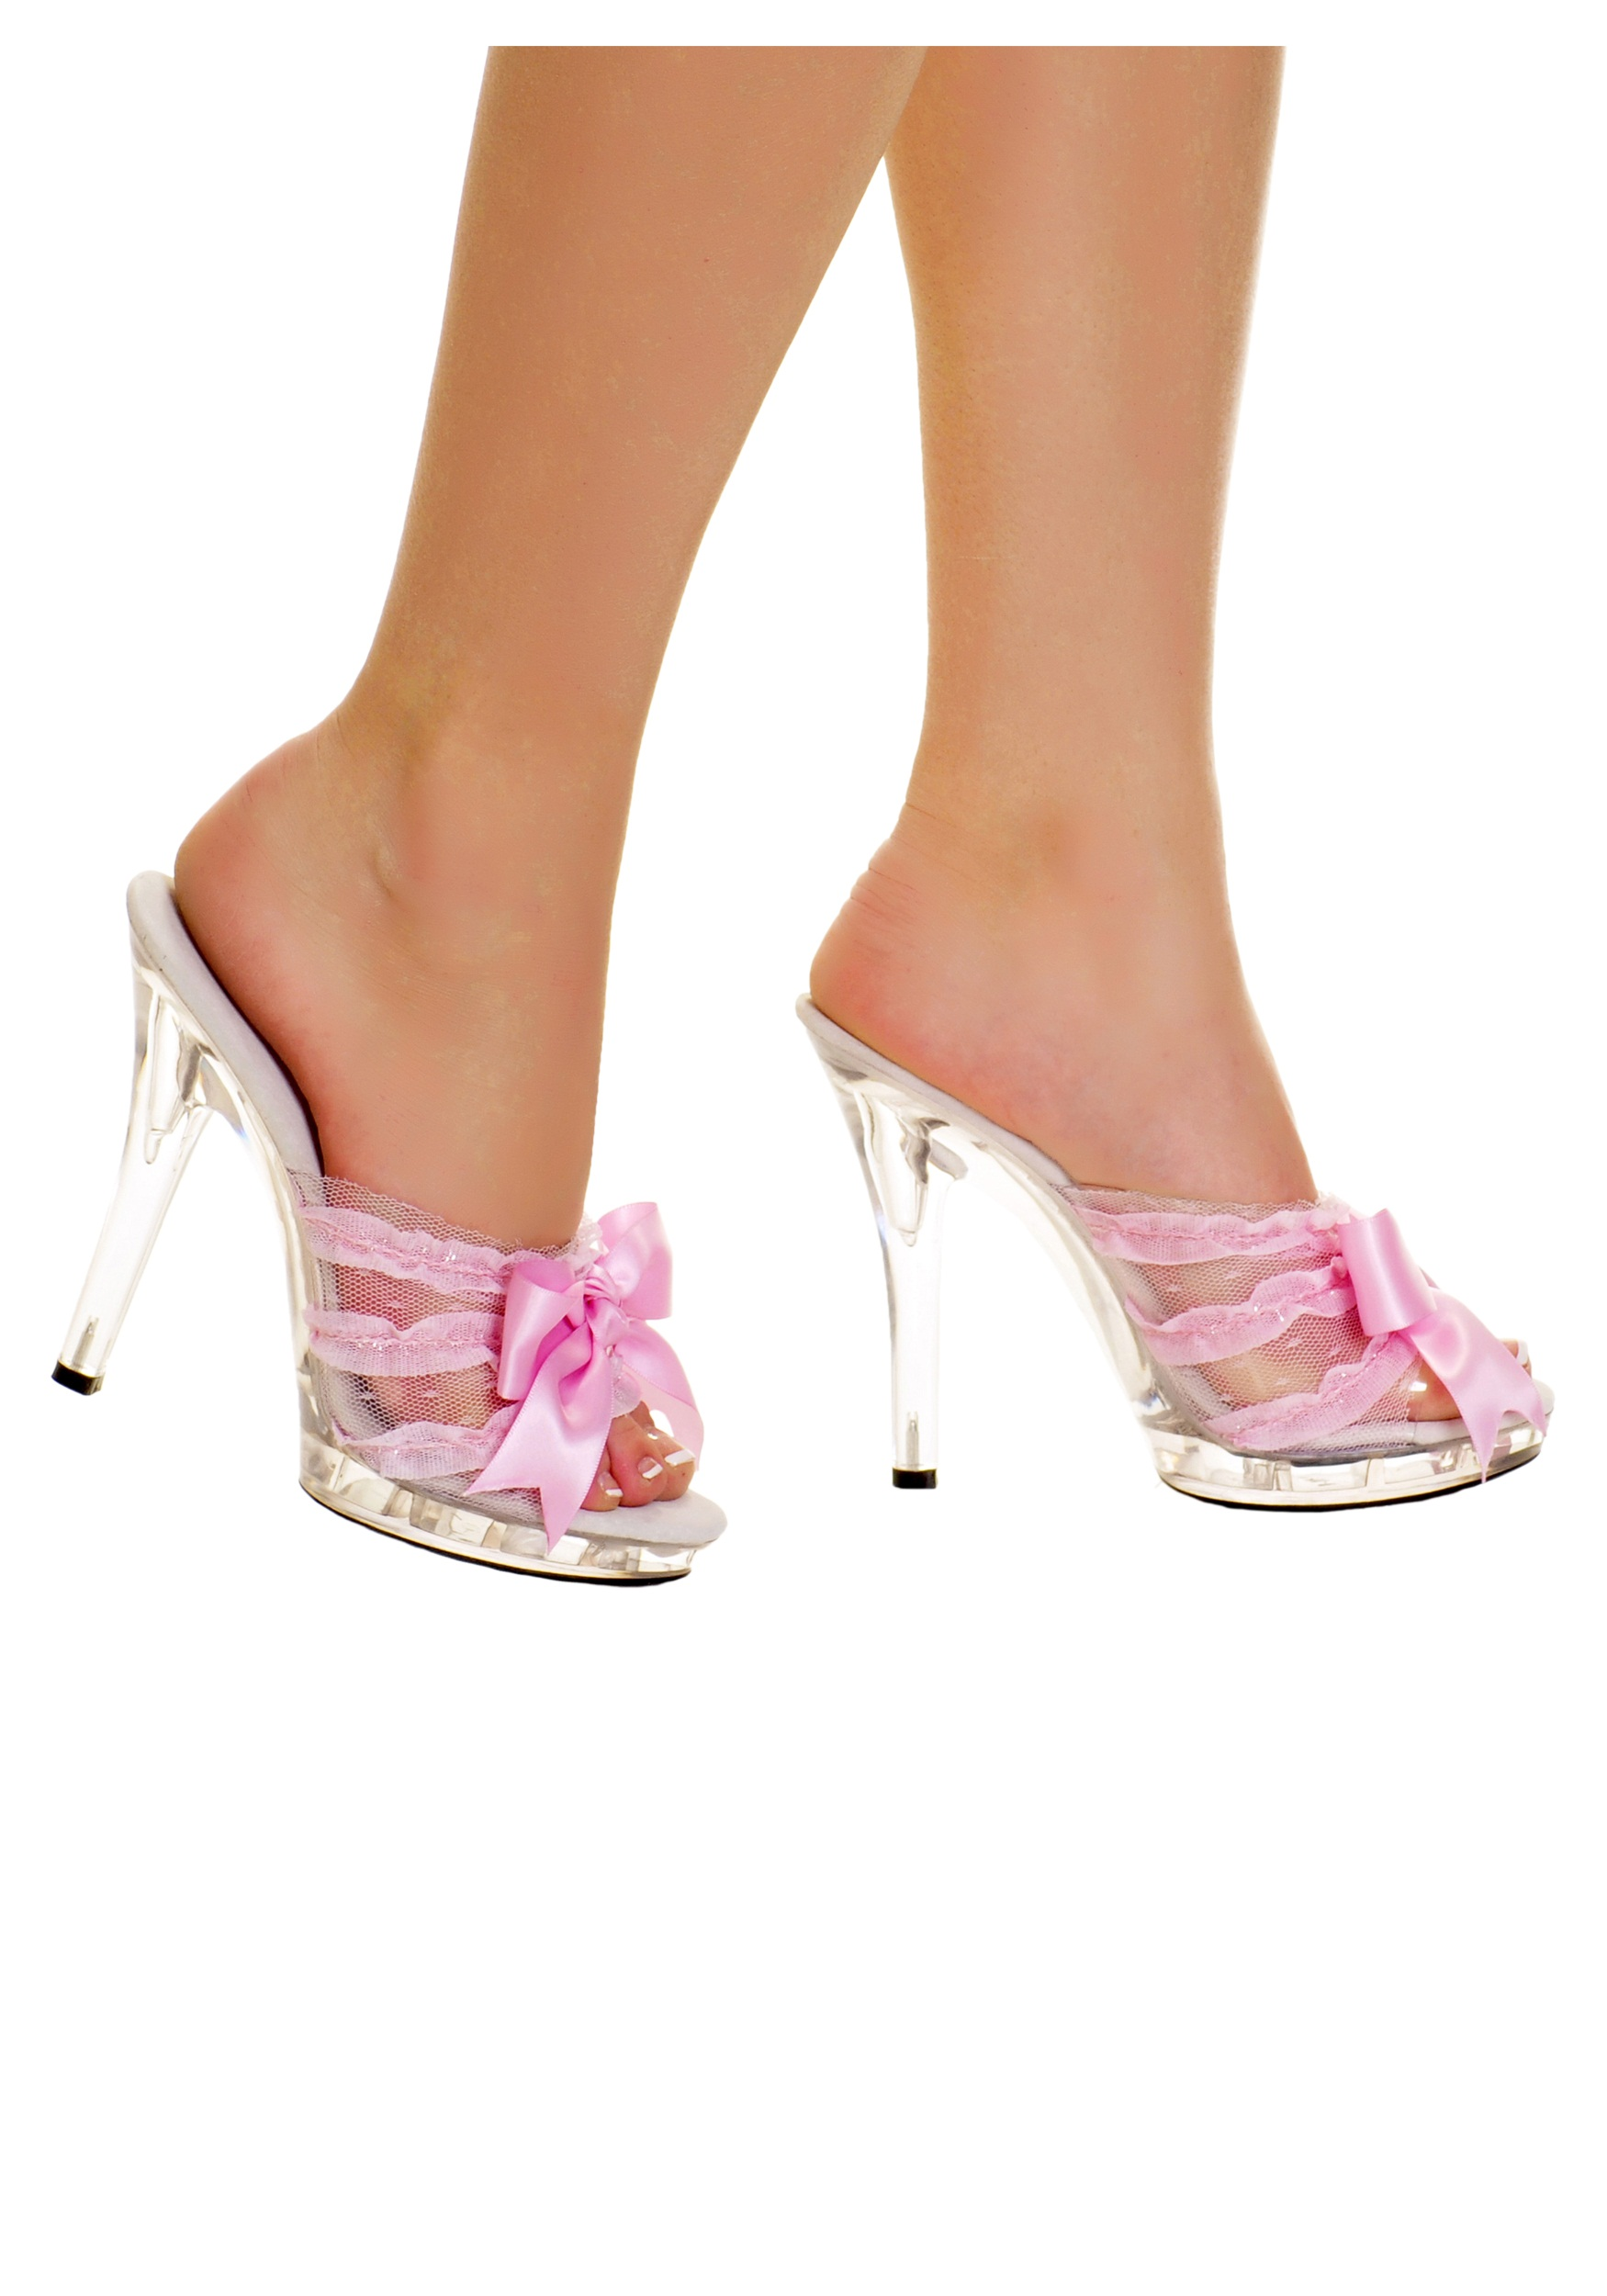 Clear Slip In Peep Toe Heels w/ Pink Ribbon